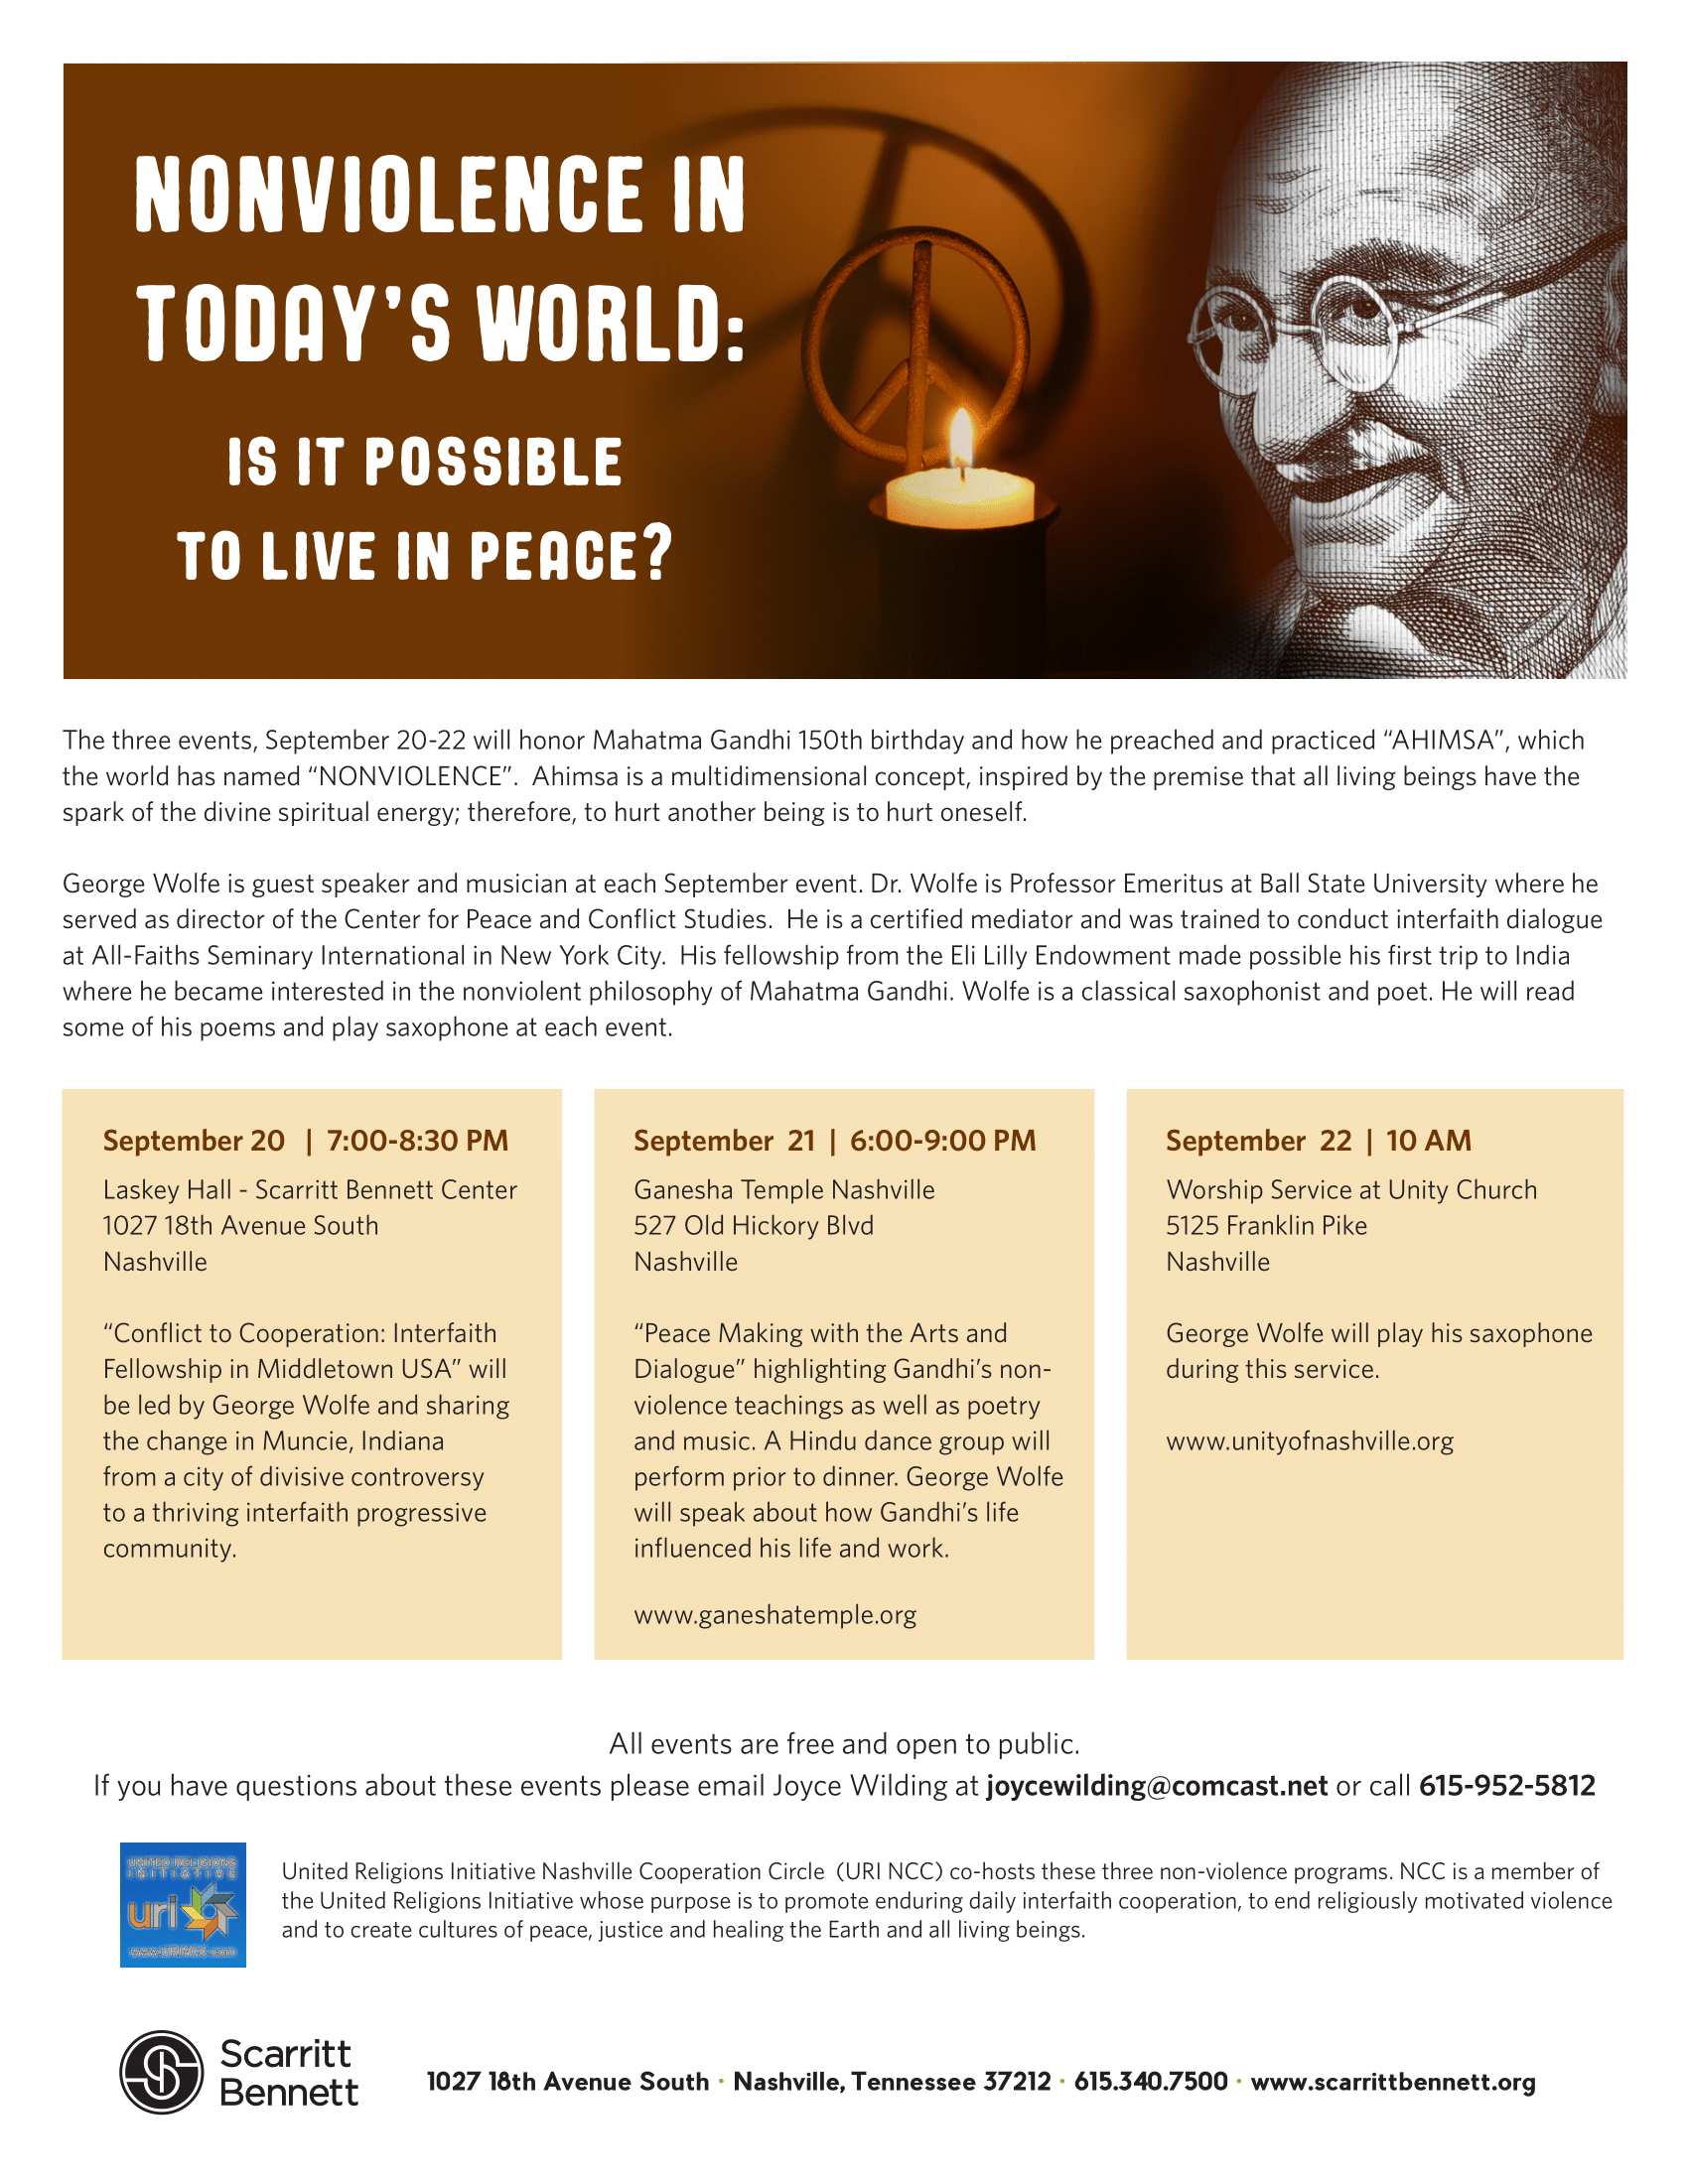 "The three events, September 20-22 will honor Mahatma Gandhi 150th birthday and how he preached and practiced ""AHIMSA"", which the world has named ""NONVIOLENCE"". Ahimsa is a multidimensional concept, inspired by the premise that all living beings have the spark of the divine spiritual energy; therefore, to hurt another being is to hurt oneself. George Wolfe is guest speaker and musician at each September event. Dr. Wolfe is Professor Emeritus at Ball State University where he served as director of the Center for Peace and Conflict Studies. He is a certified mediator and was trained to conduct interfaith dialogue at All-Faiths Seminary International in New York City. His fellowship from the Eli Lilly Endowment made possible his first trip to India where he became interested in the nonviolent philosophy of Mahatma Gandhi. Wolfe is a classical saxophonist and poet. He will read some of his poems and play saxophone at each event. NONVIOLENCE IN TODAY'S WORLD: is it possible to live in peace?  September 20 